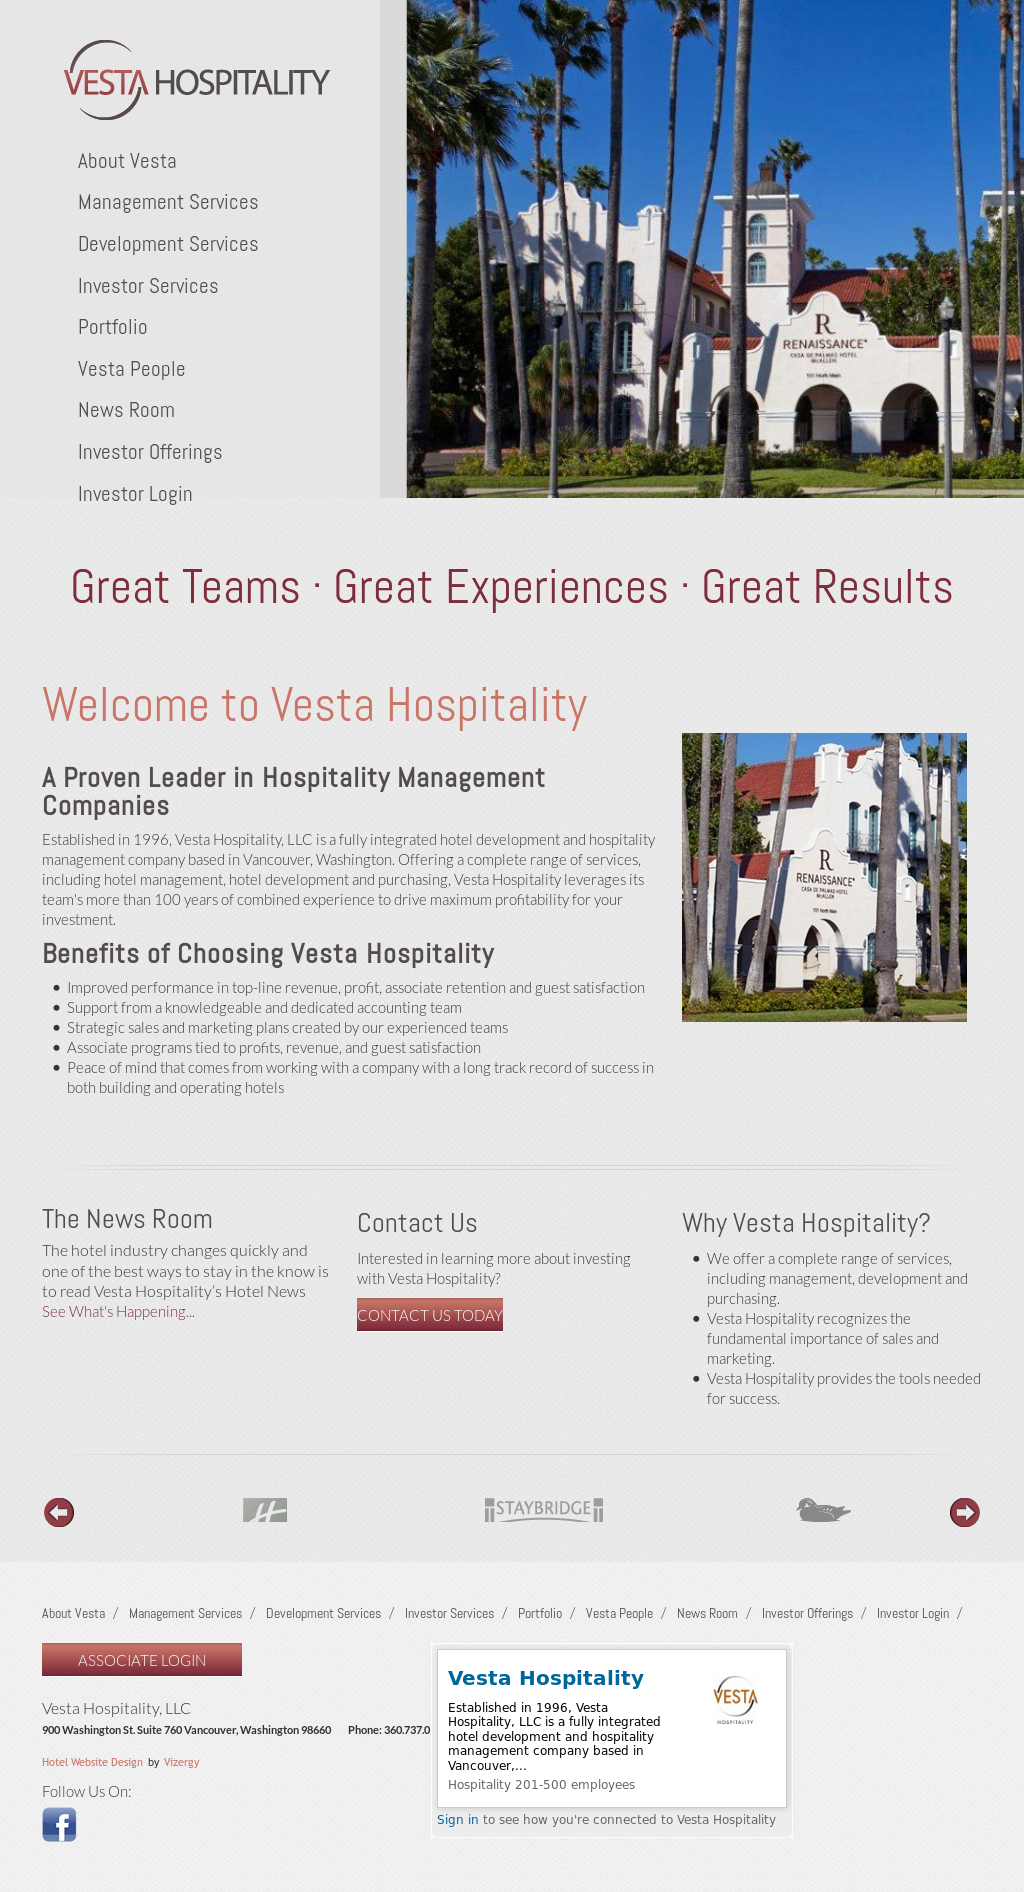 Vestahospitality Competitors, Revenue and Employees - Owler Company